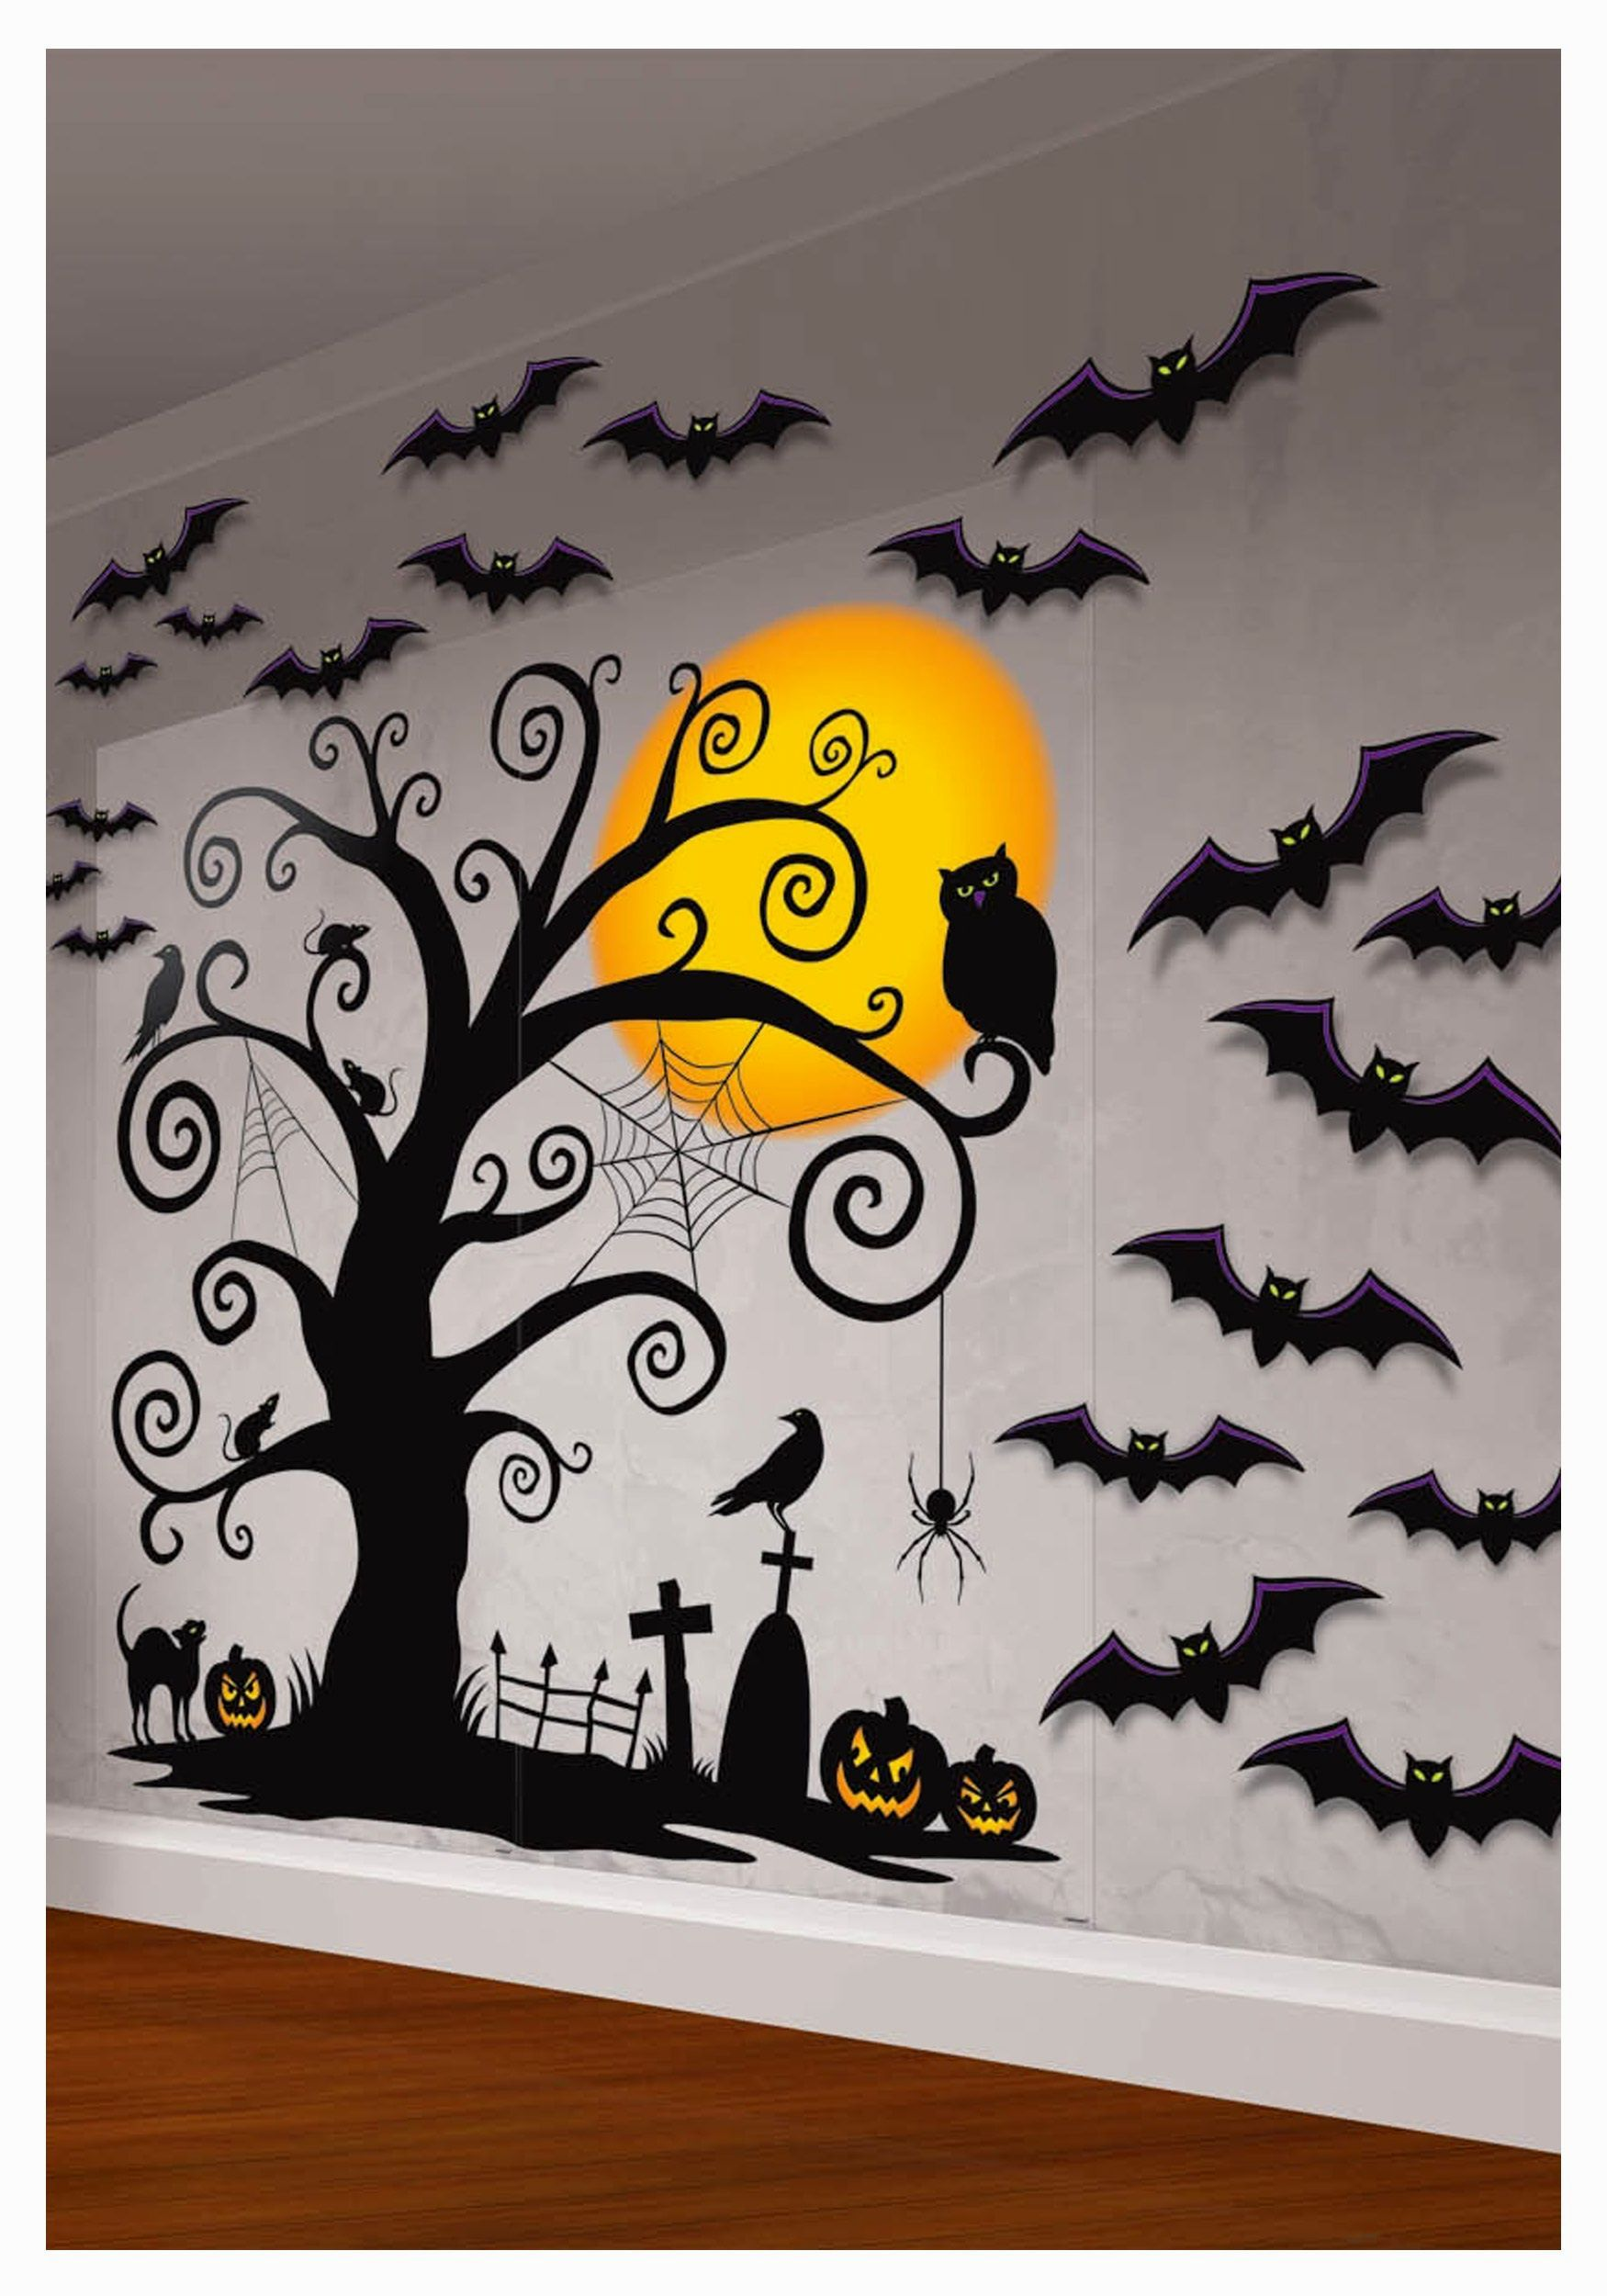 Resultado de imagen de halloween decorations for the classroom door - Halloween Classroom Door Decorations